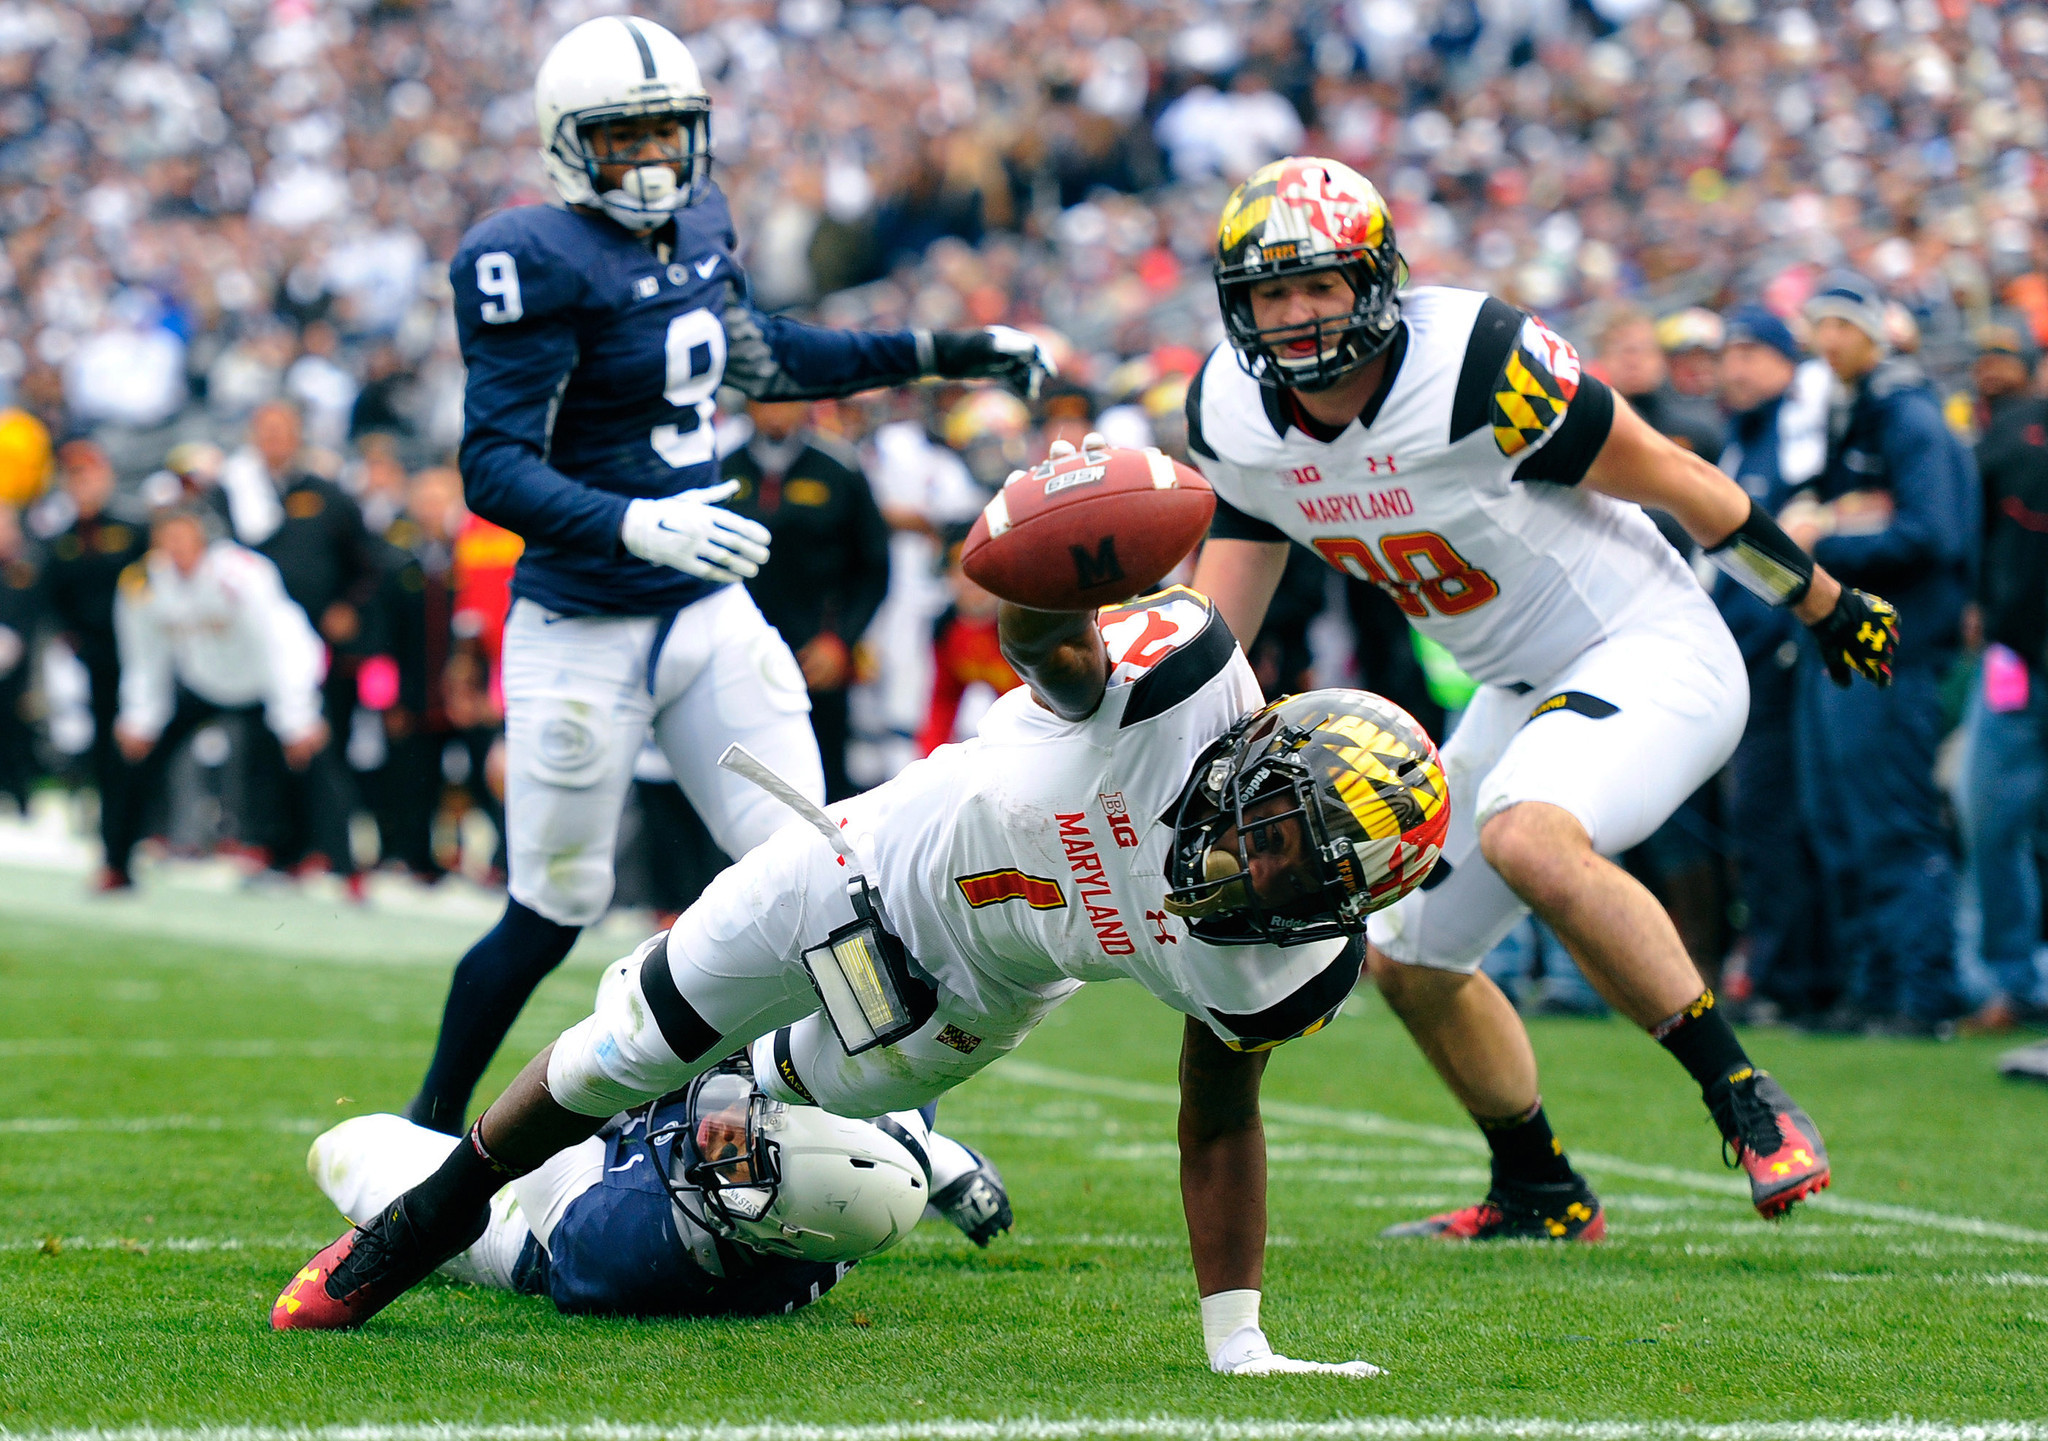 Maryland s Stefon Diggs lacerated kidney against Penn State